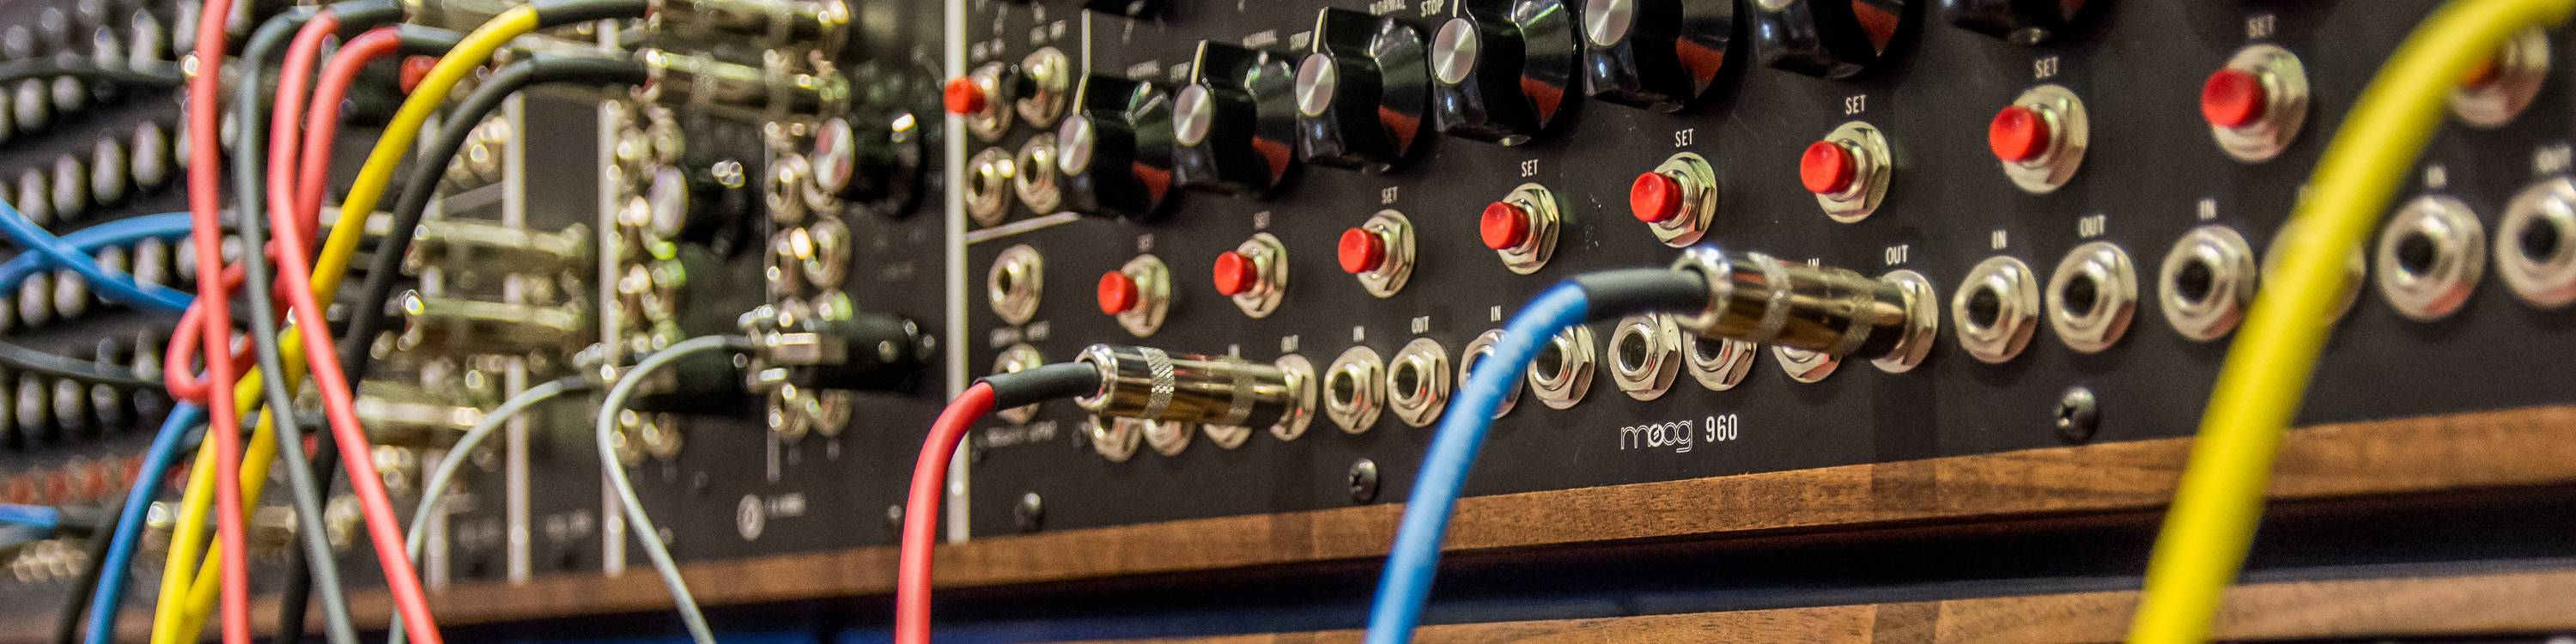 A modular wall mounted synthesiser that can be condensed into a simple bass VST